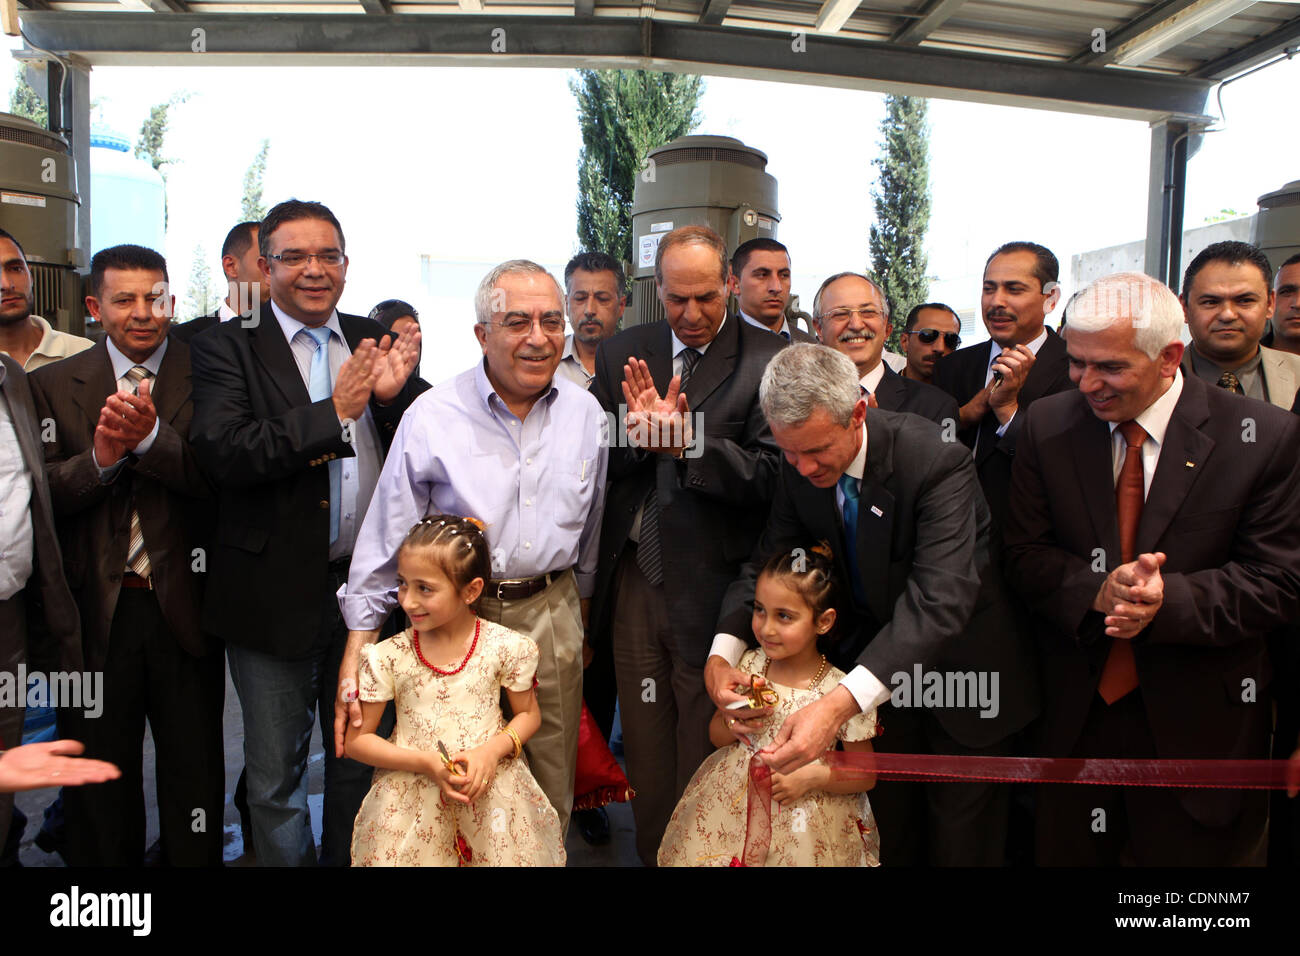 Palestinian prime minister Salam Fayyad attends the inauguration ceremony for well stations rehabilitation project - Stock Image